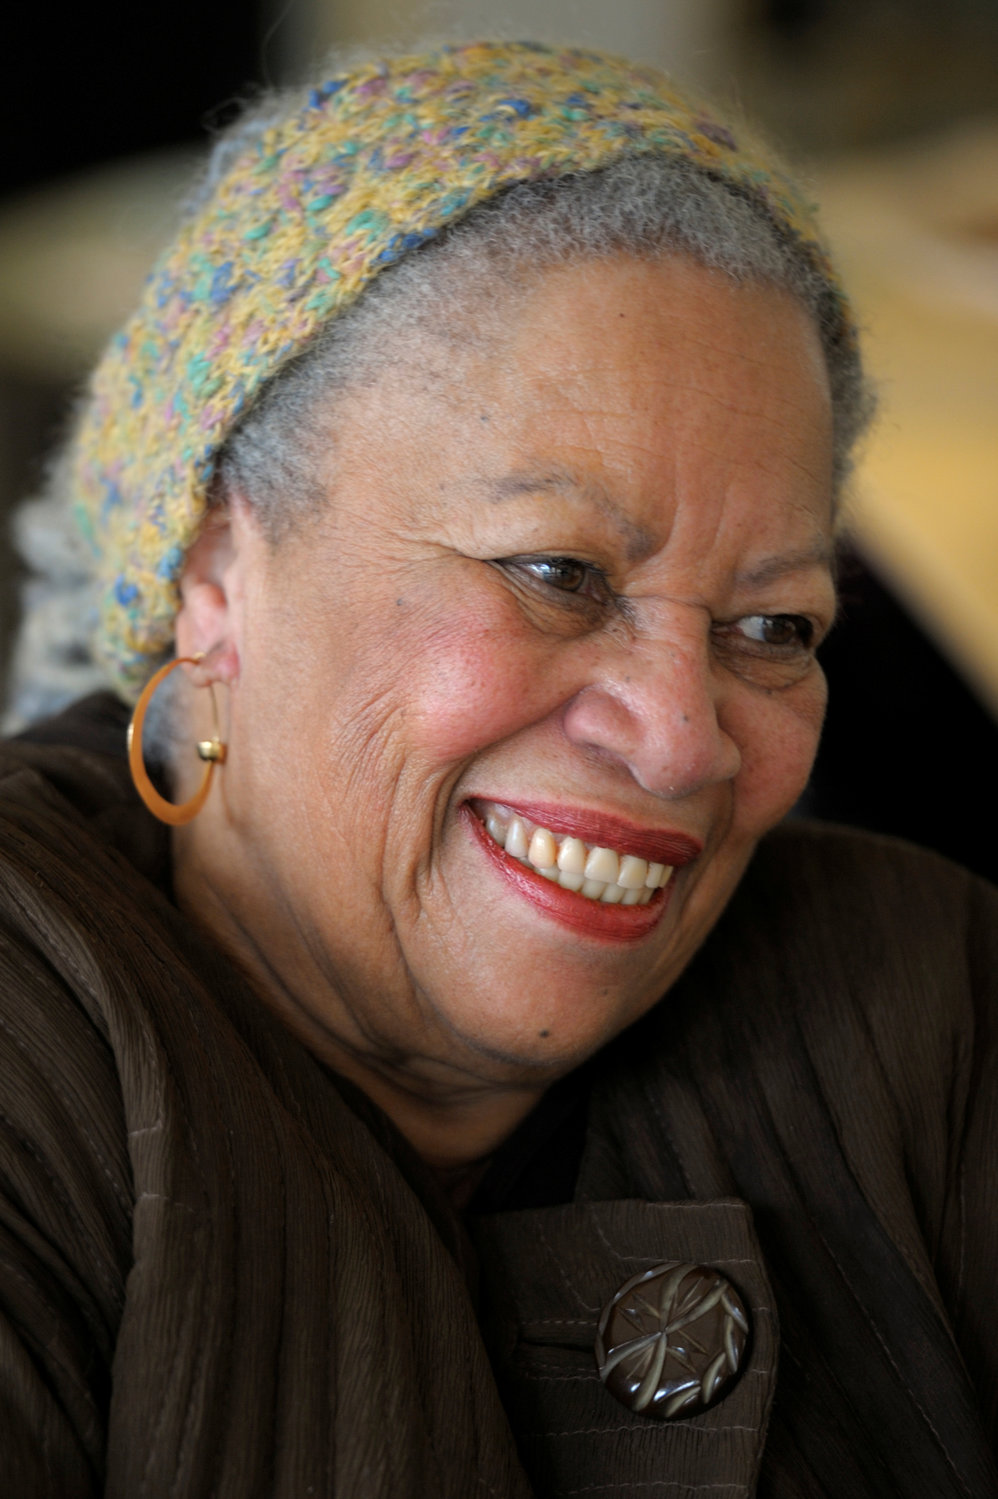 Toni Morrison, award-winning author of 11 novels whose words brought to life the experiences of African American women, died Aug. 5, 2019, at age 88 in New York due to complications from pneumonia. Shown in a Nov. 3, 2010, photo, Morrison became Catholic at age 12.